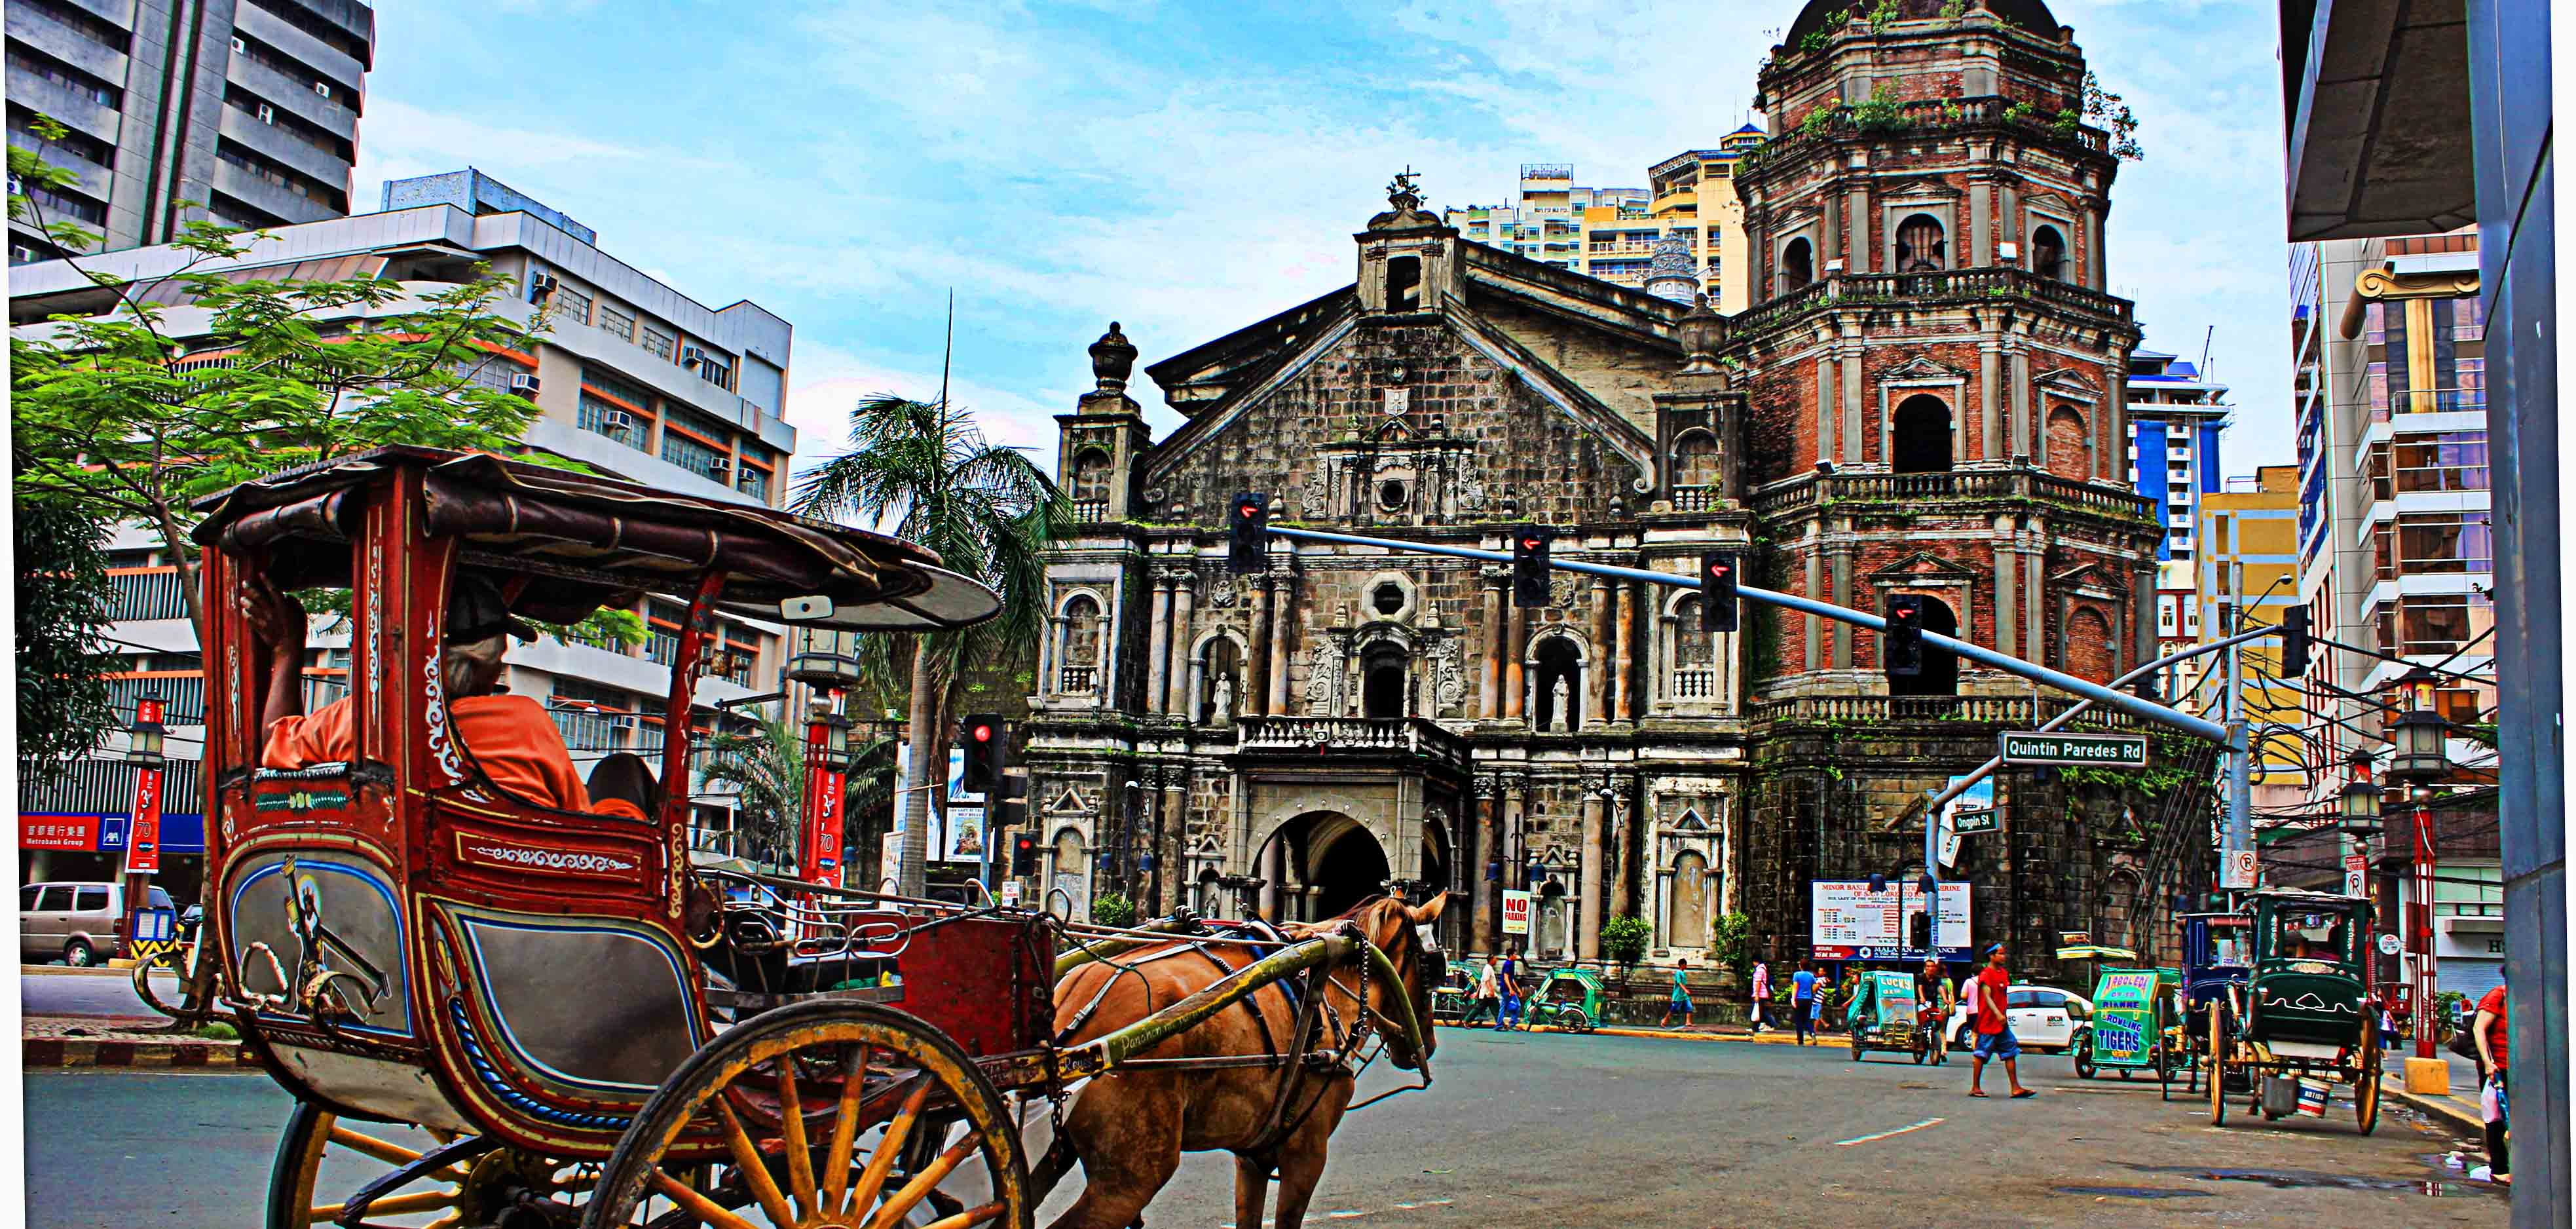 Rizal Park Hotel - Binondo Church